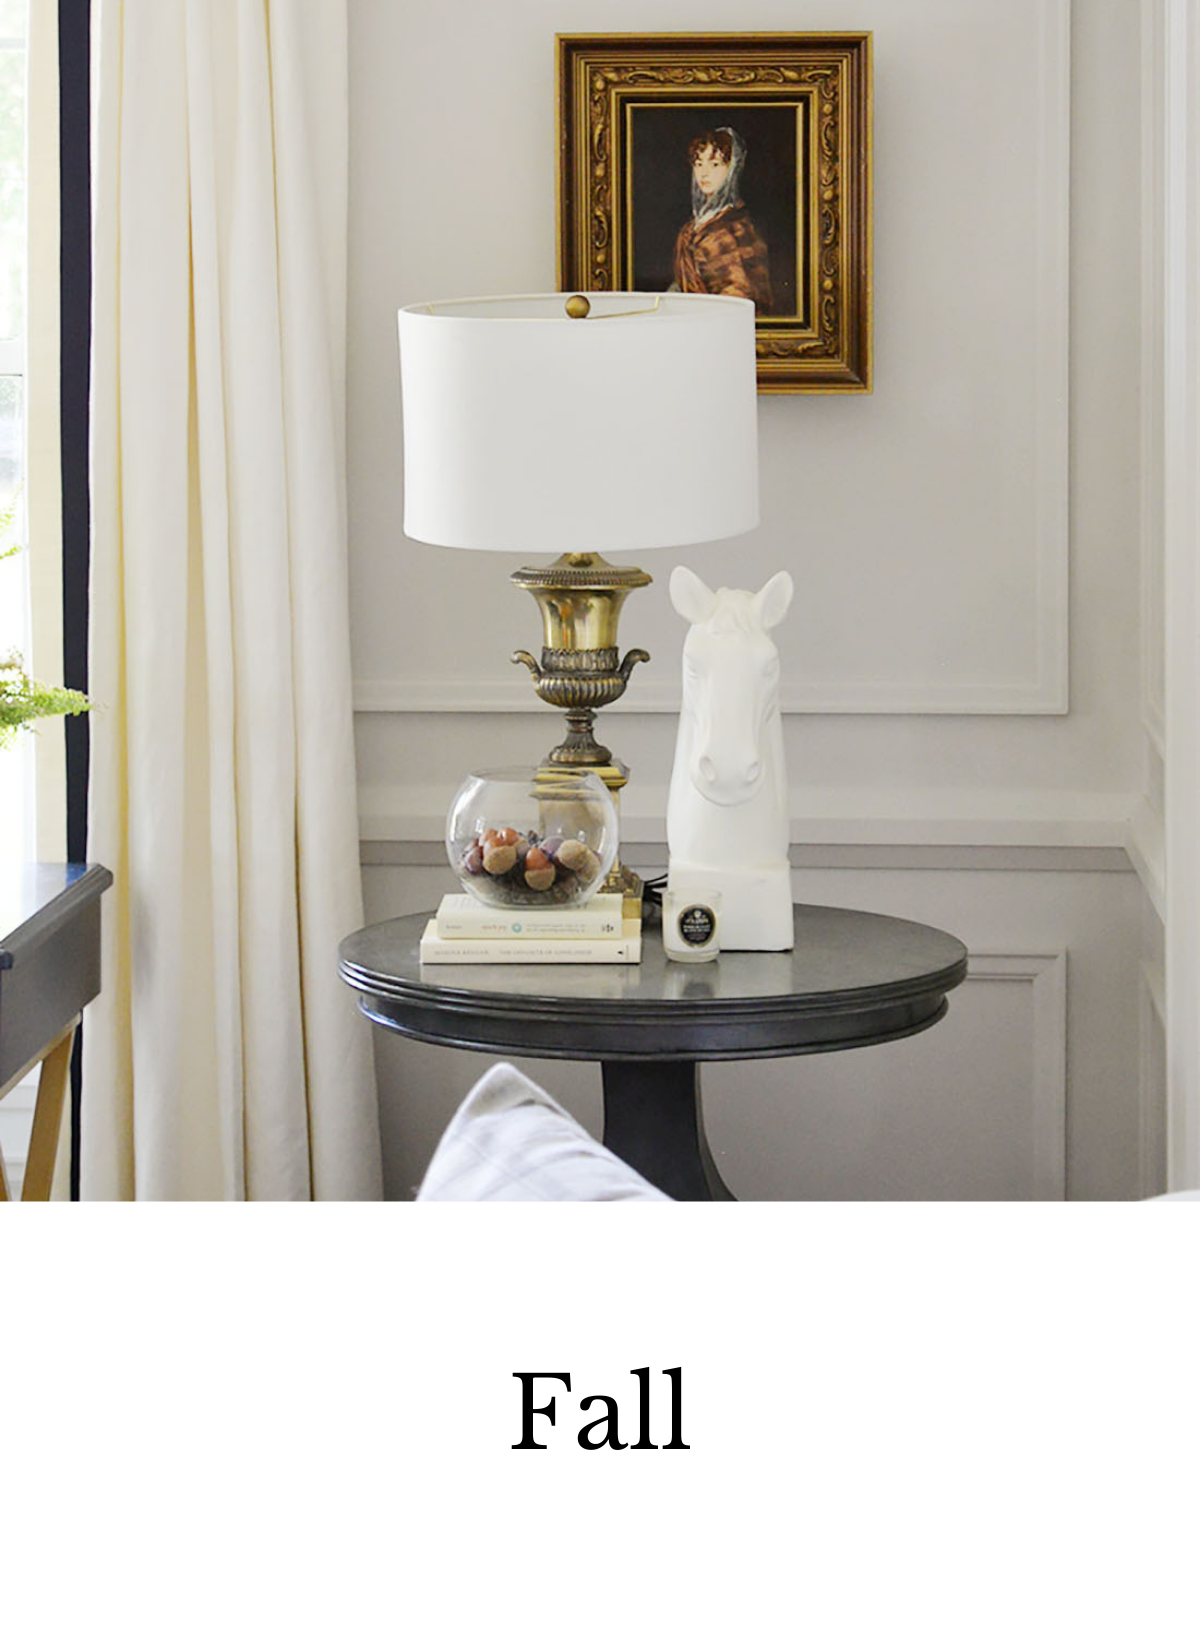 fall home projects, fall home decor, fall decorating ideas